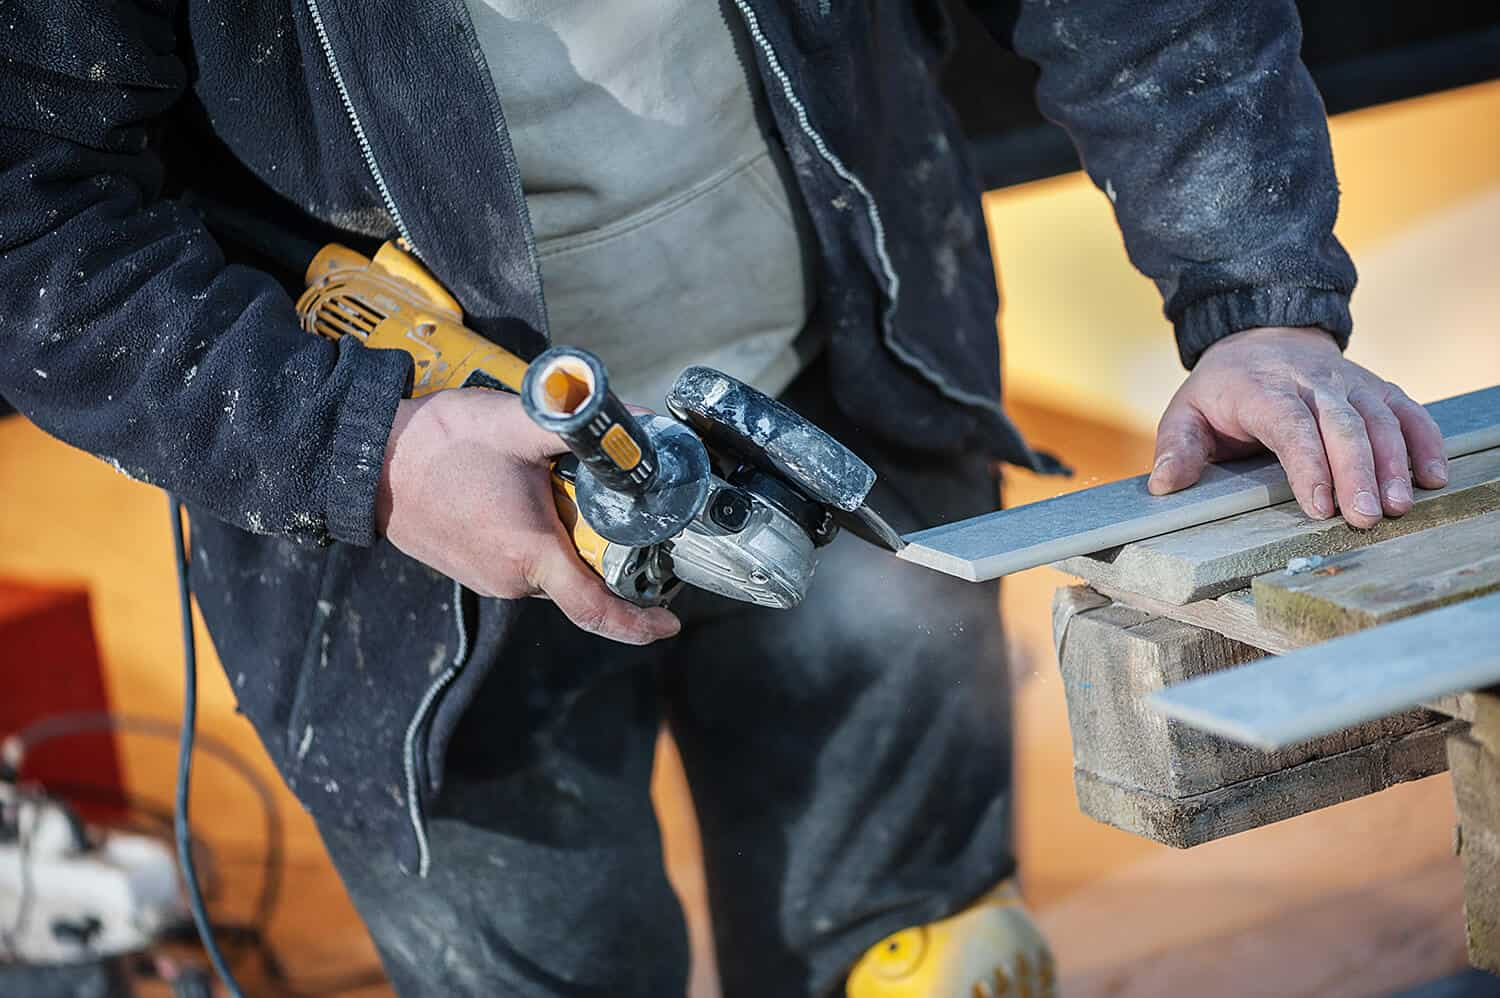 Things to Consider When Cutting Tiles With an Angle Grinder